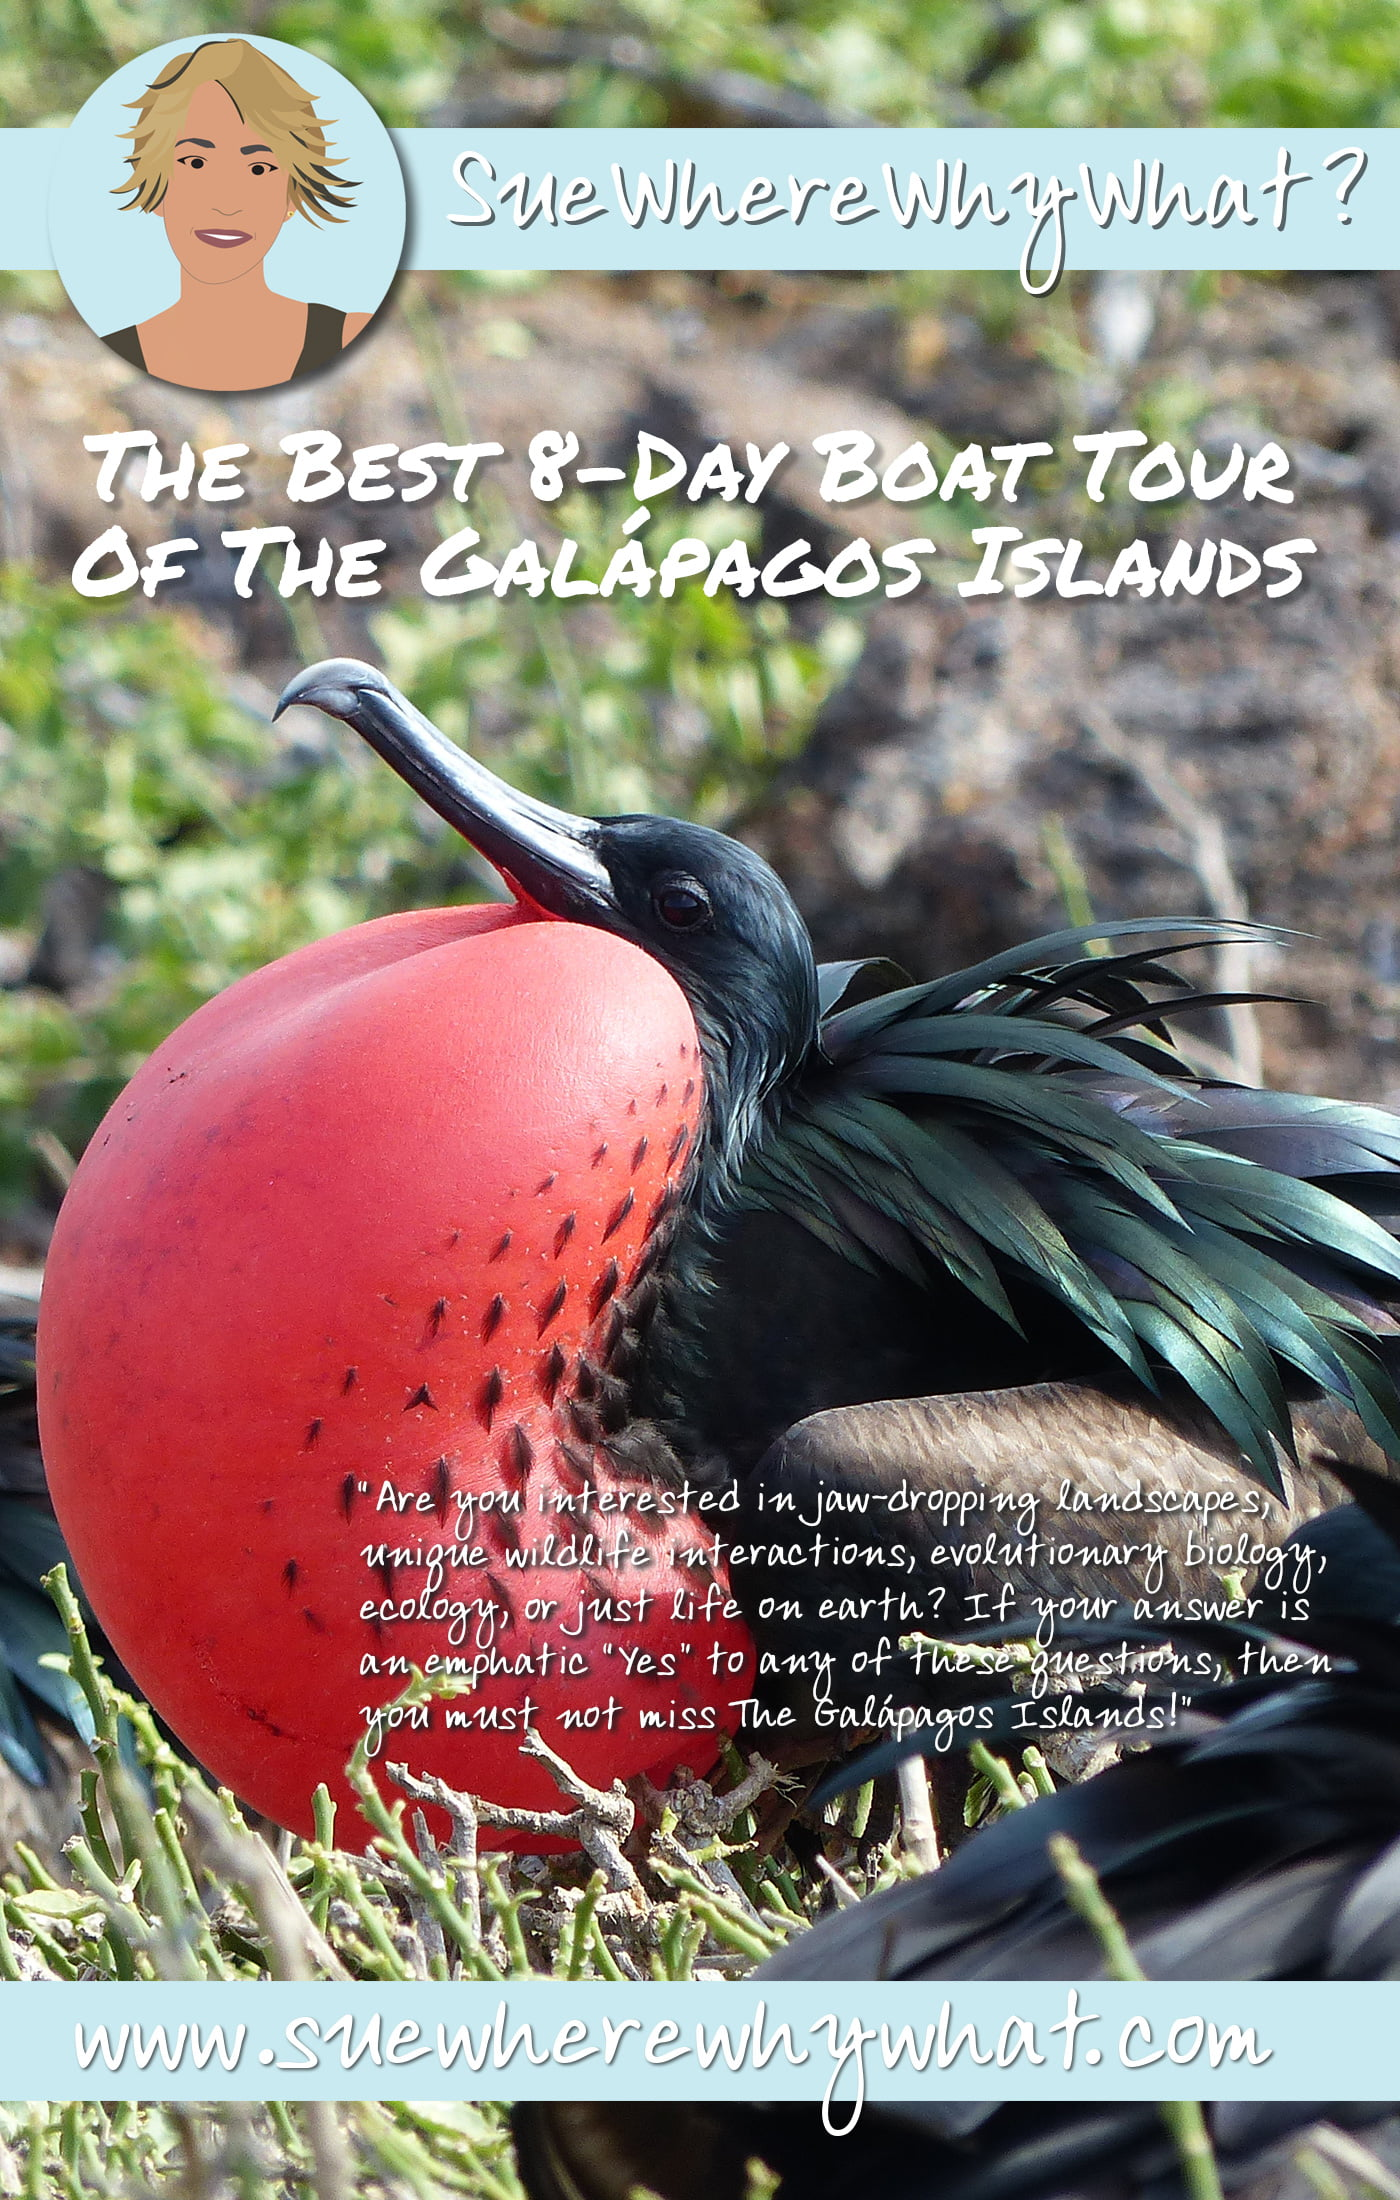 Amazing 8-Day Boat Tour Of The Galápagos Islands